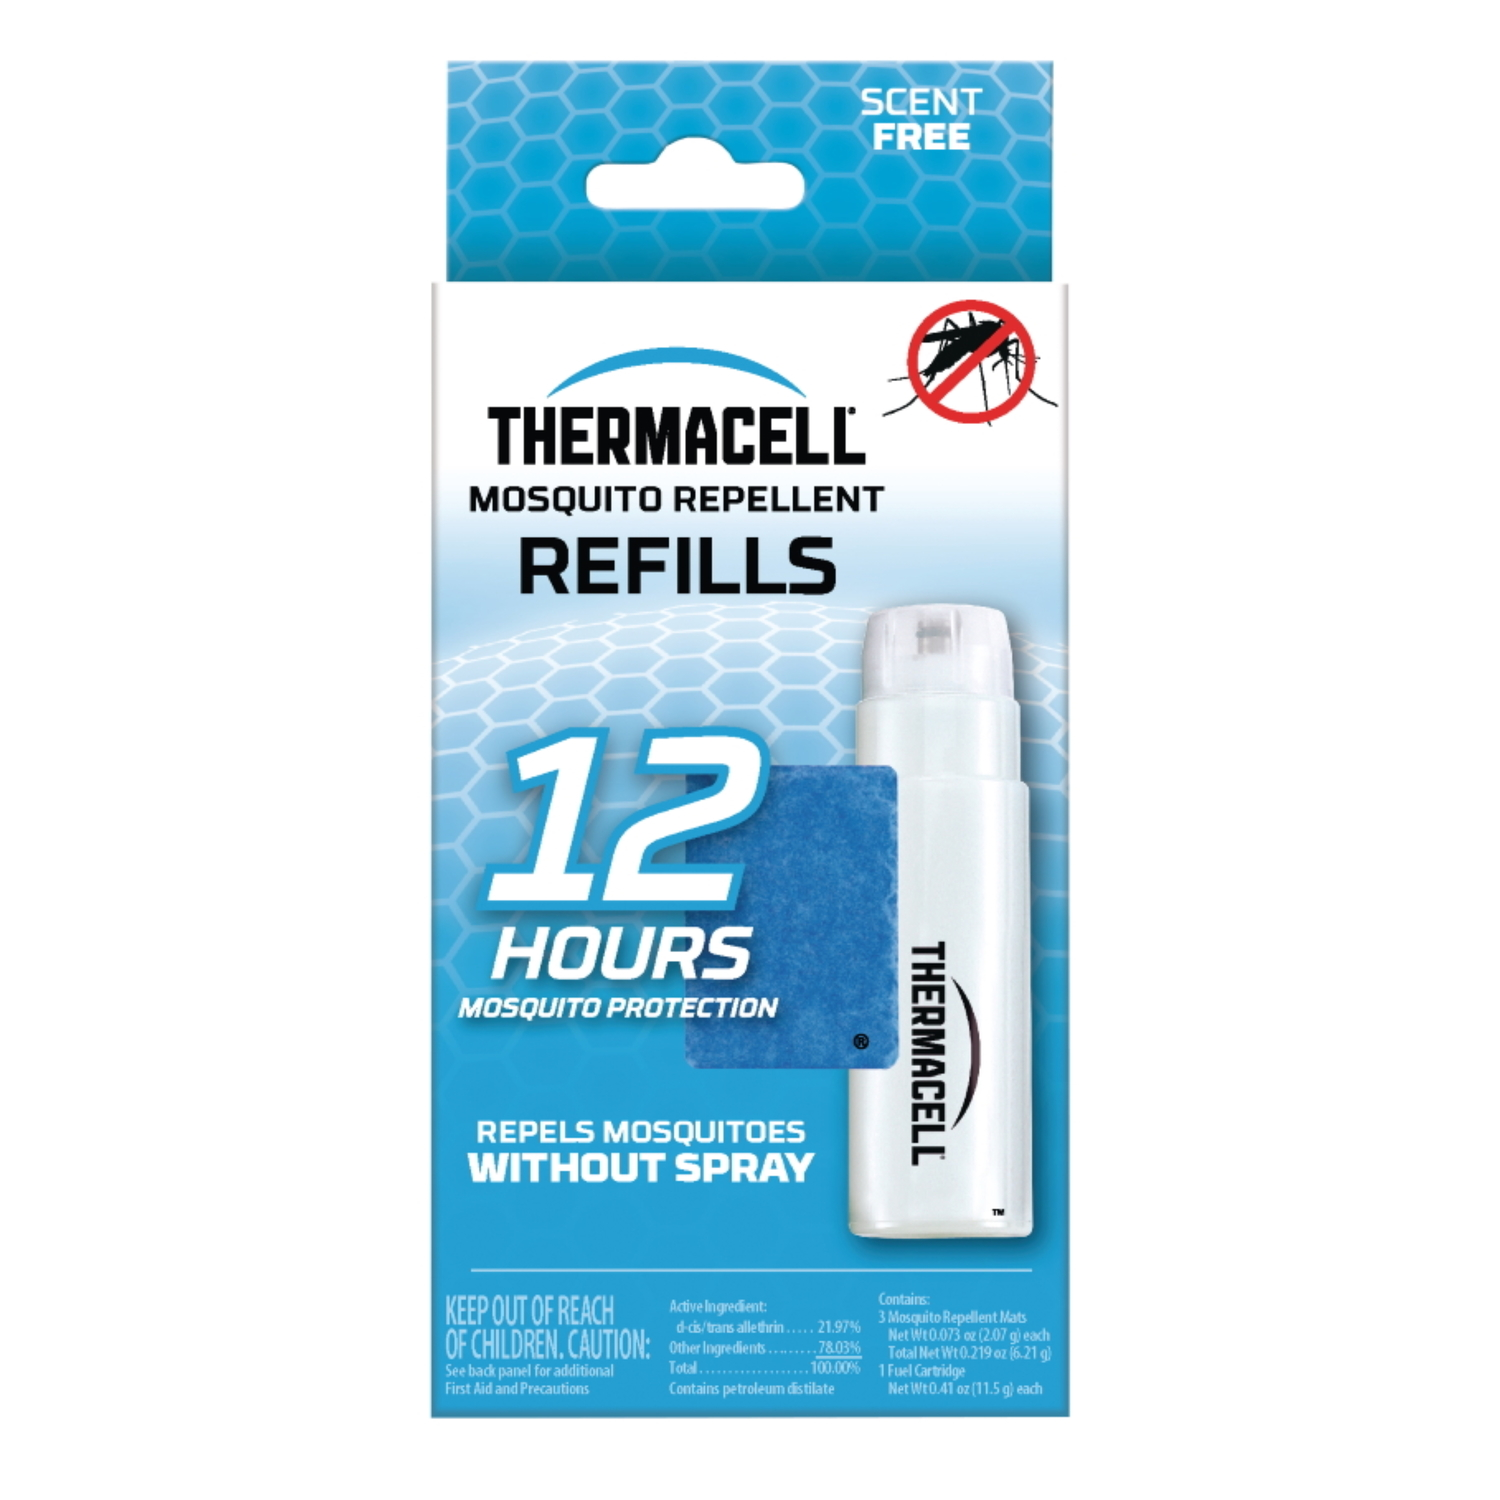 Thermacell Insect Repellent Refill Cartridge For Mosquitoes 0.2 oz. For use in Thermacell Repellers, Lanterns, and Torches. Turn it on… Mosquitoes Gone!